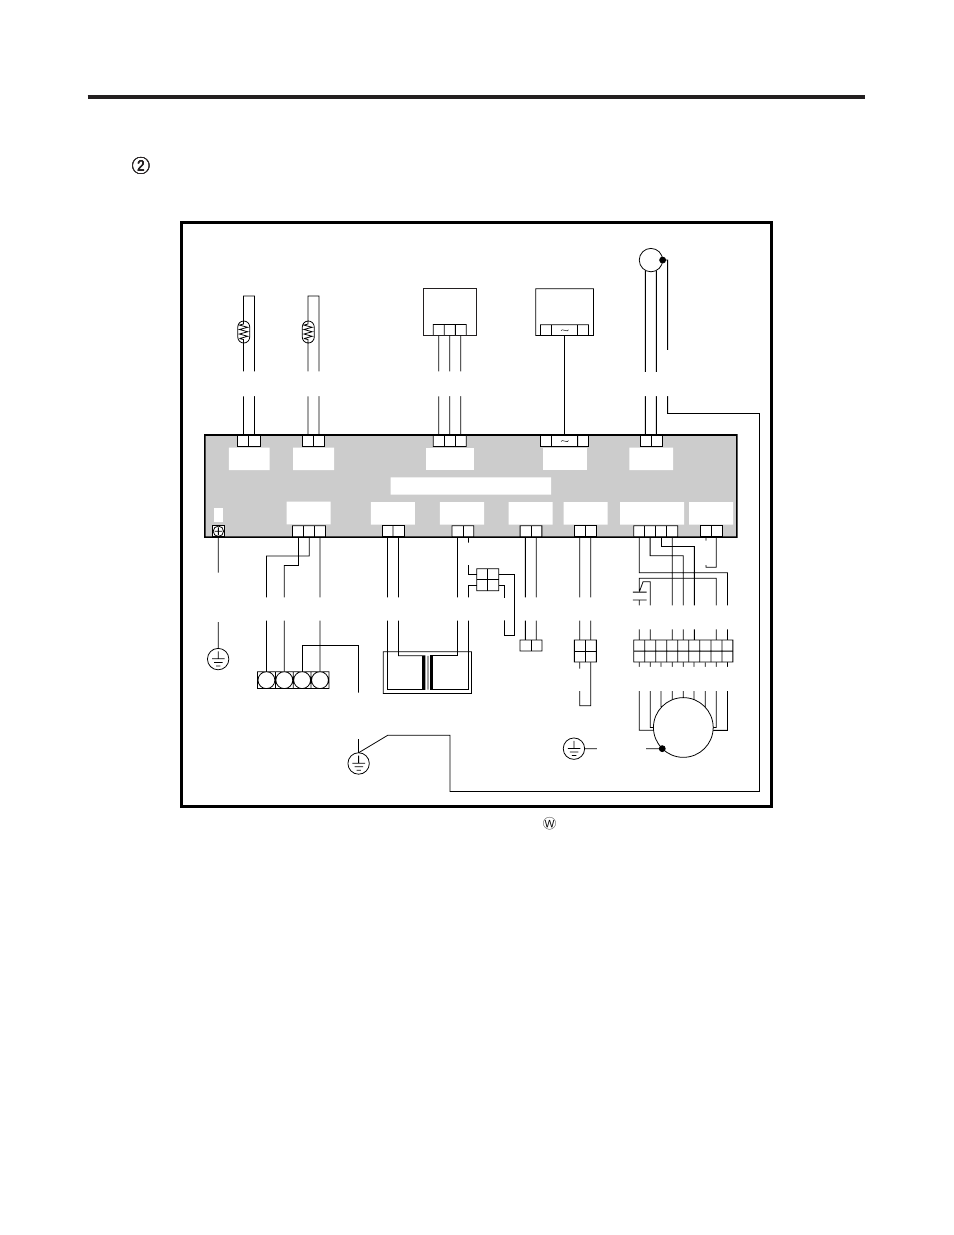 2003 Mazda Protege Fuse Diagram Another Blog About Wiring 1999 Box Protege5 Auto Headlight Radio